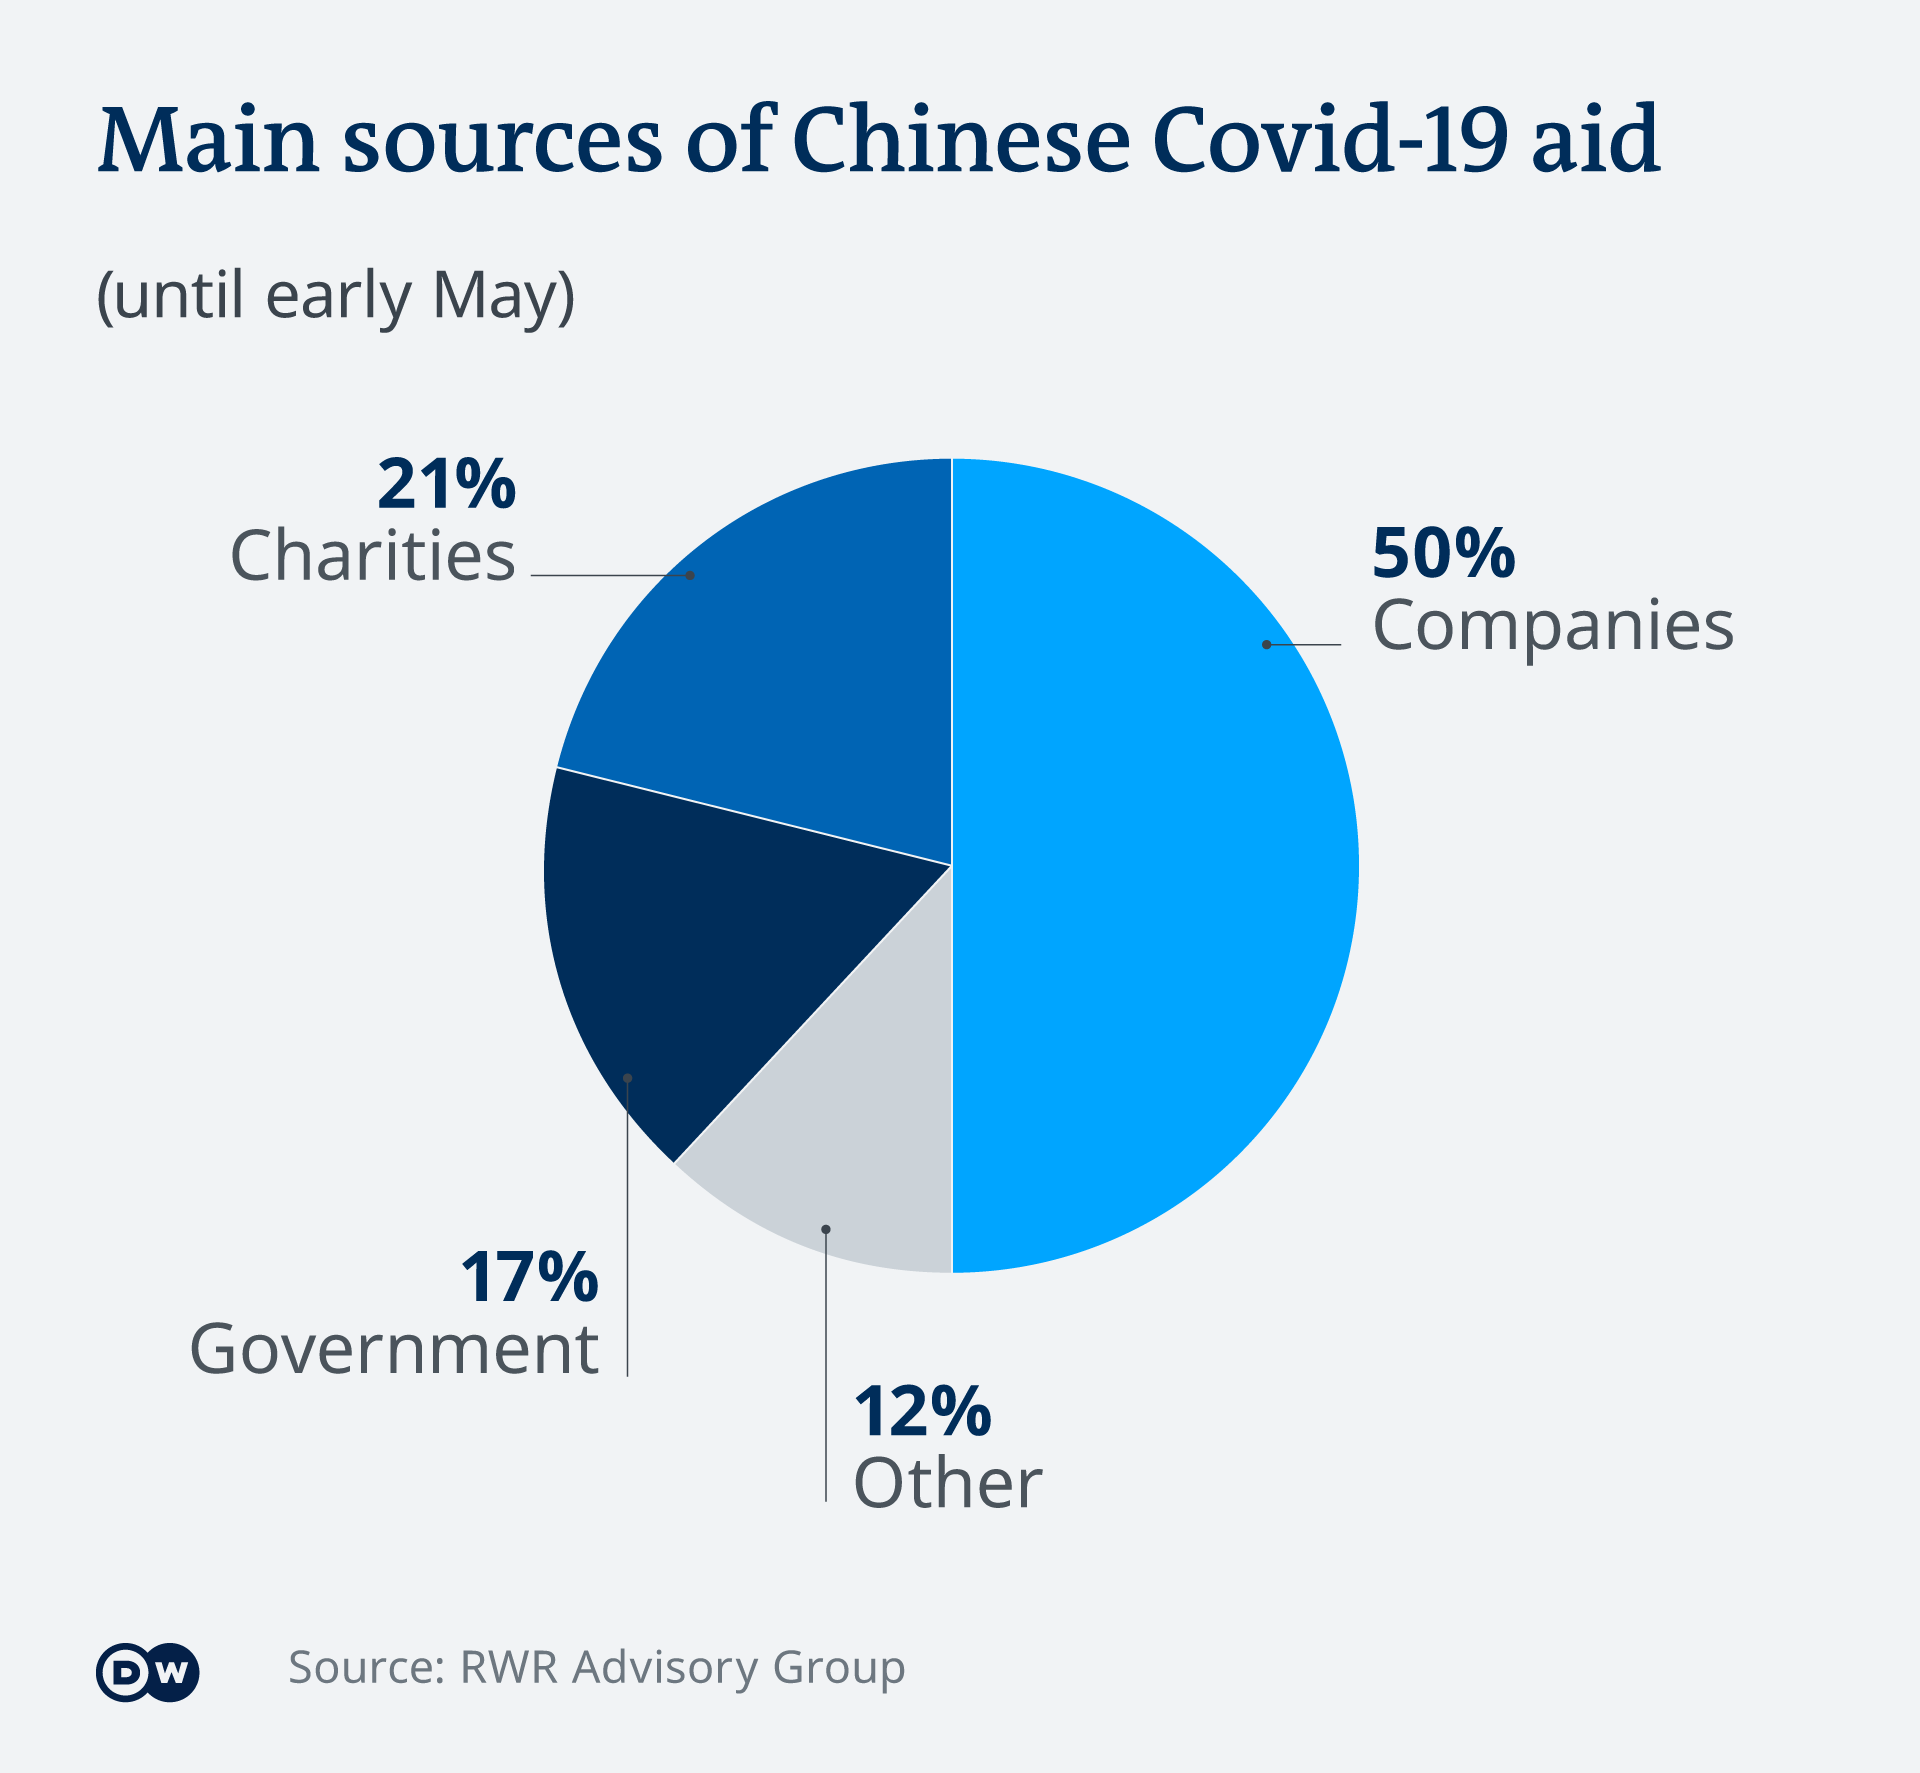 Main sources of Chinese COVID-19 aid